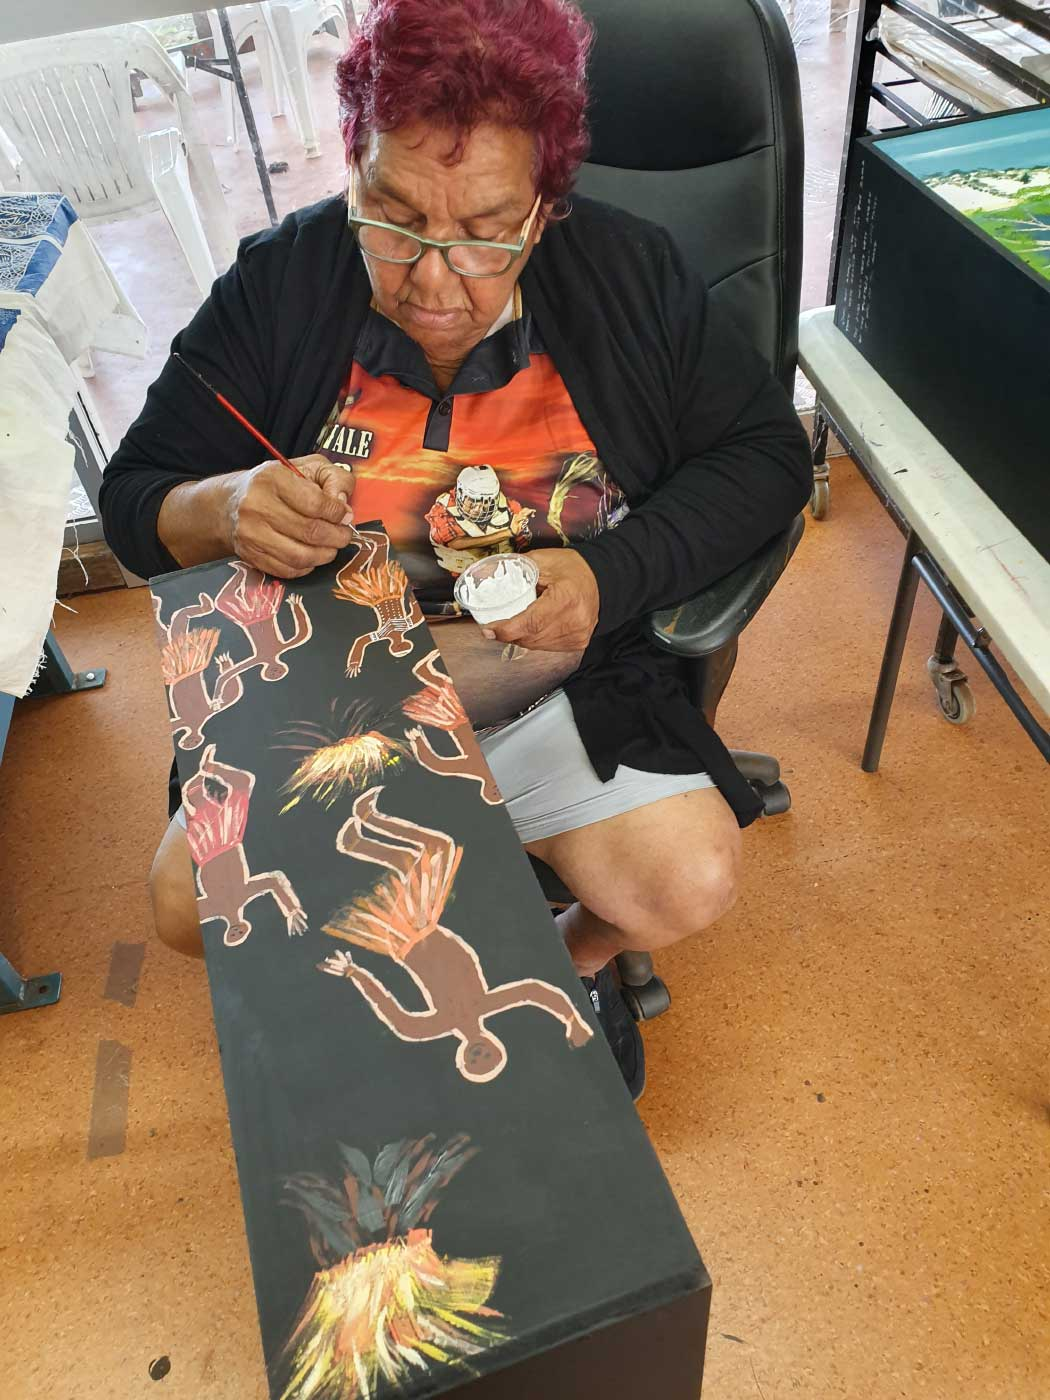 Colour photo of an elderly woman sitting in a chair and painting images of people onto a canvas. - click to view larger image